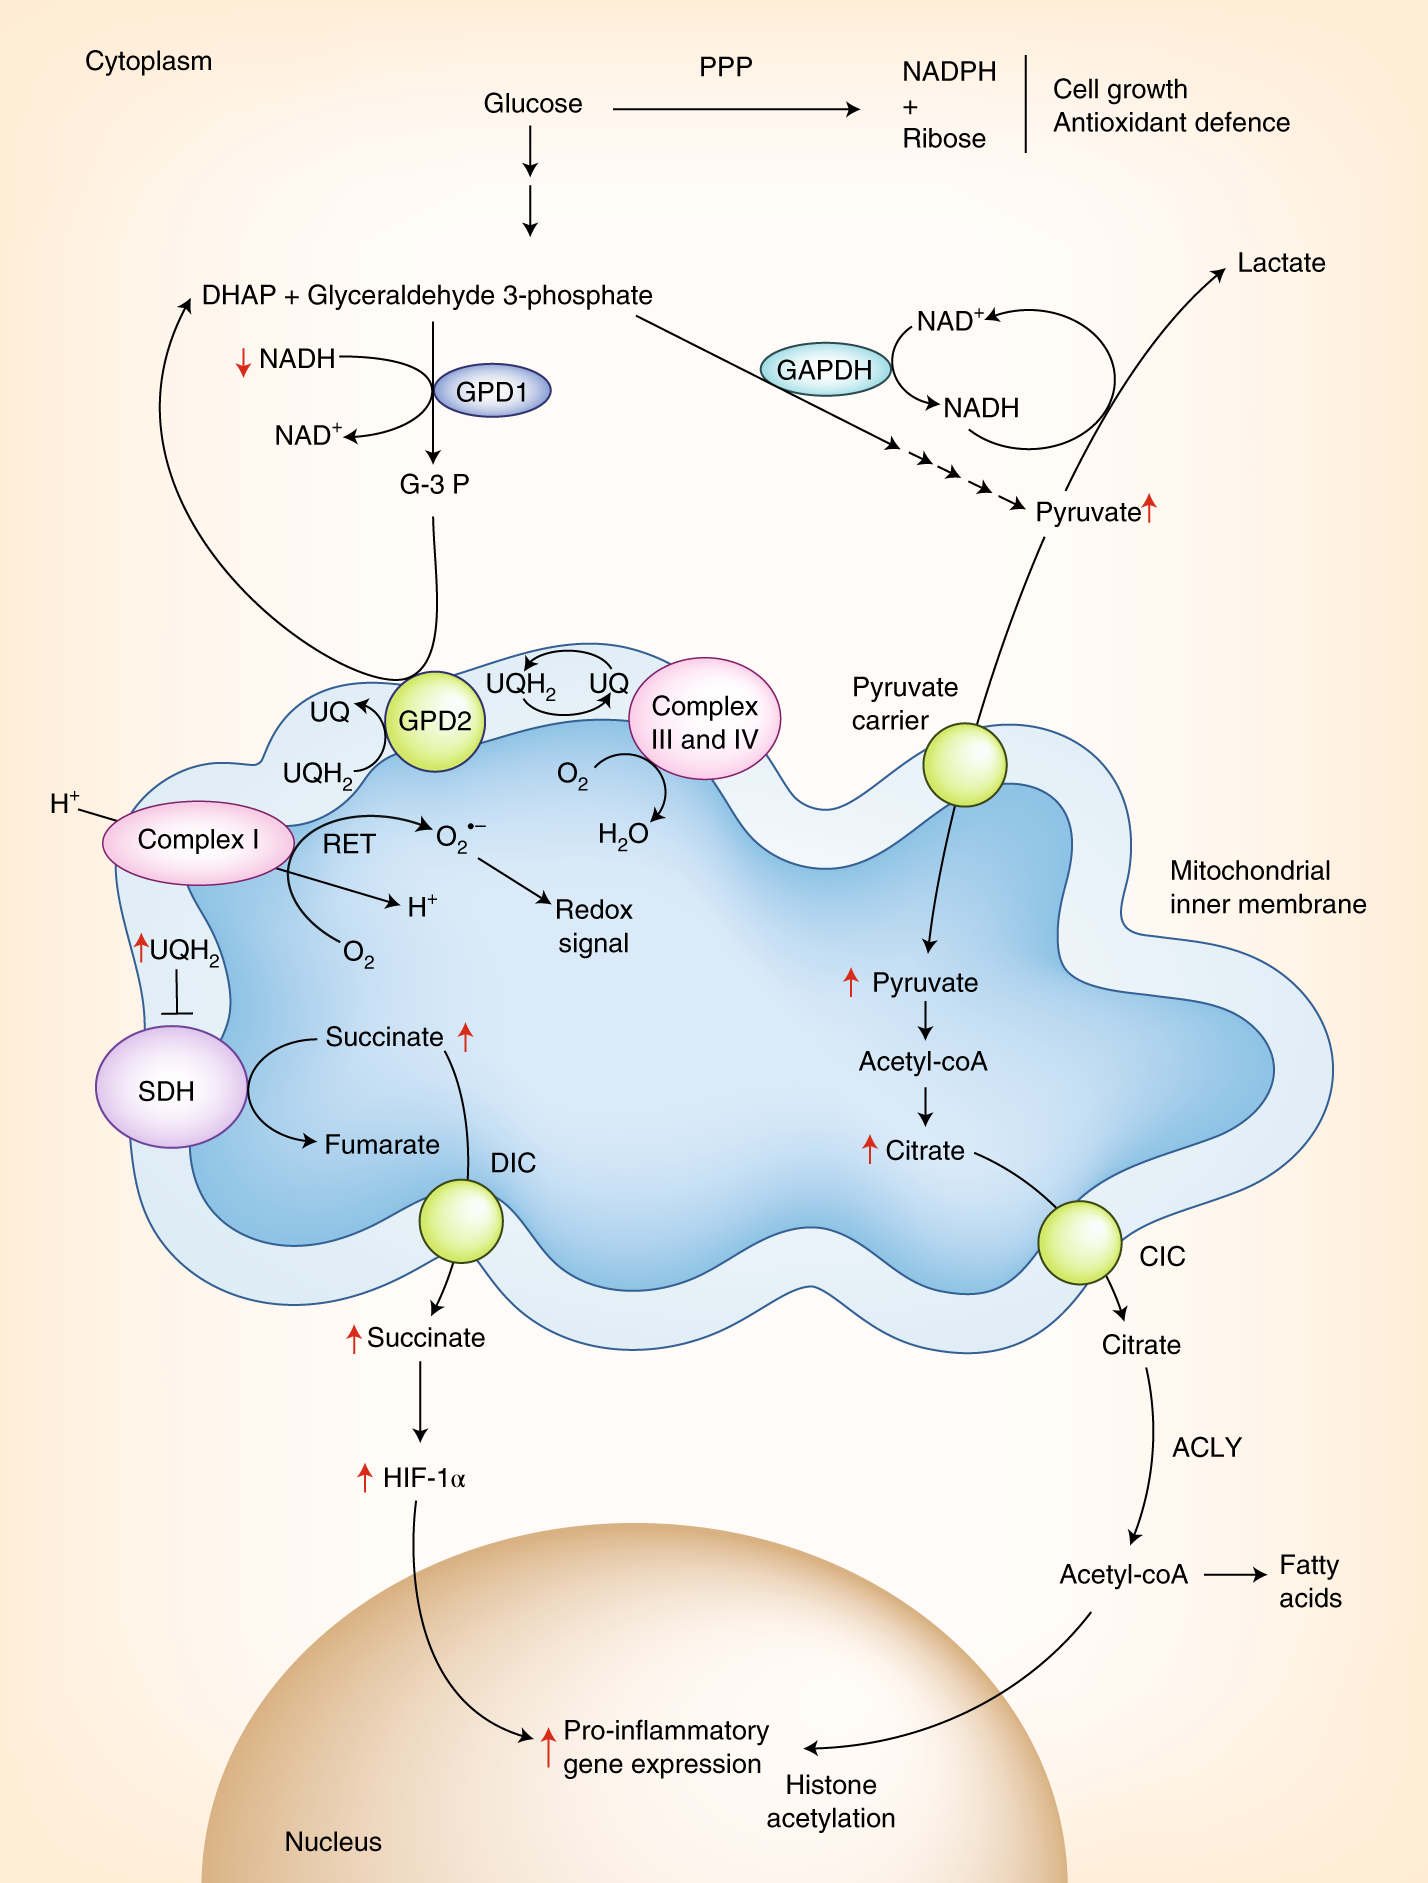 Rerouting metabolism to activate macrophages